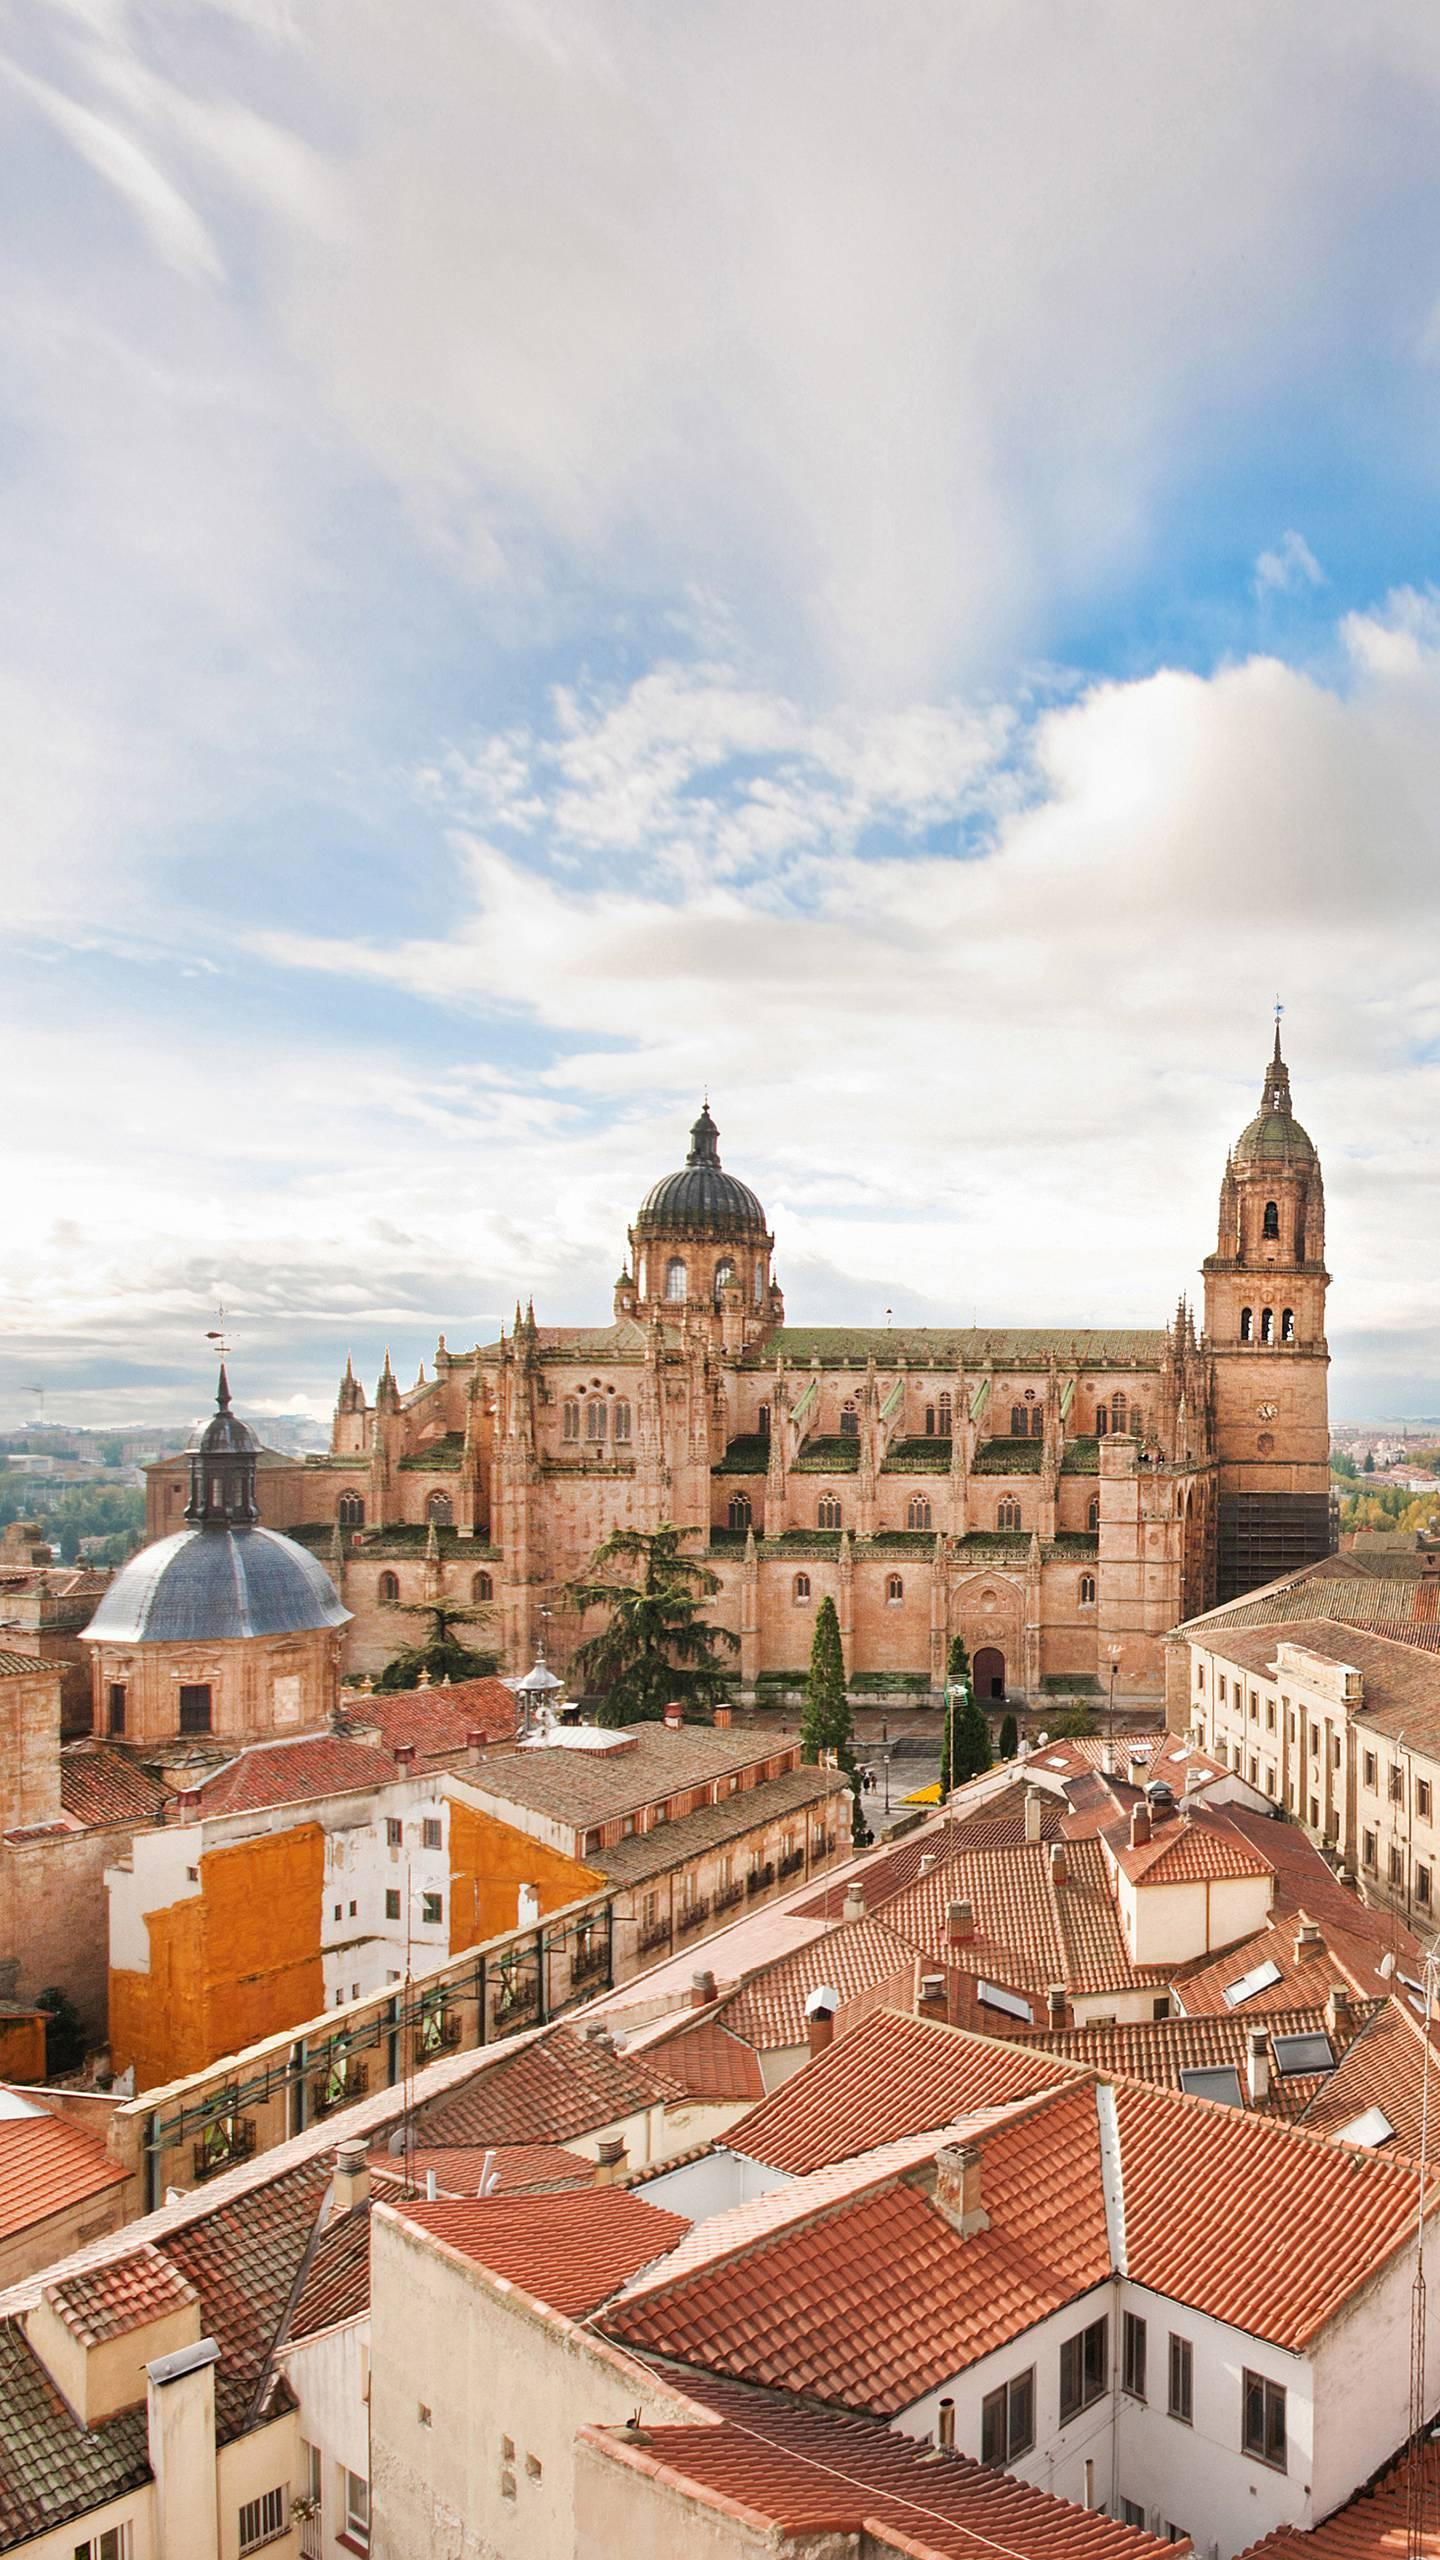 Spain - Salamanca. One of the famous tourist destinations in the Spanish mainland, with ancient humanities traditions and rich historical and artistic heritage.